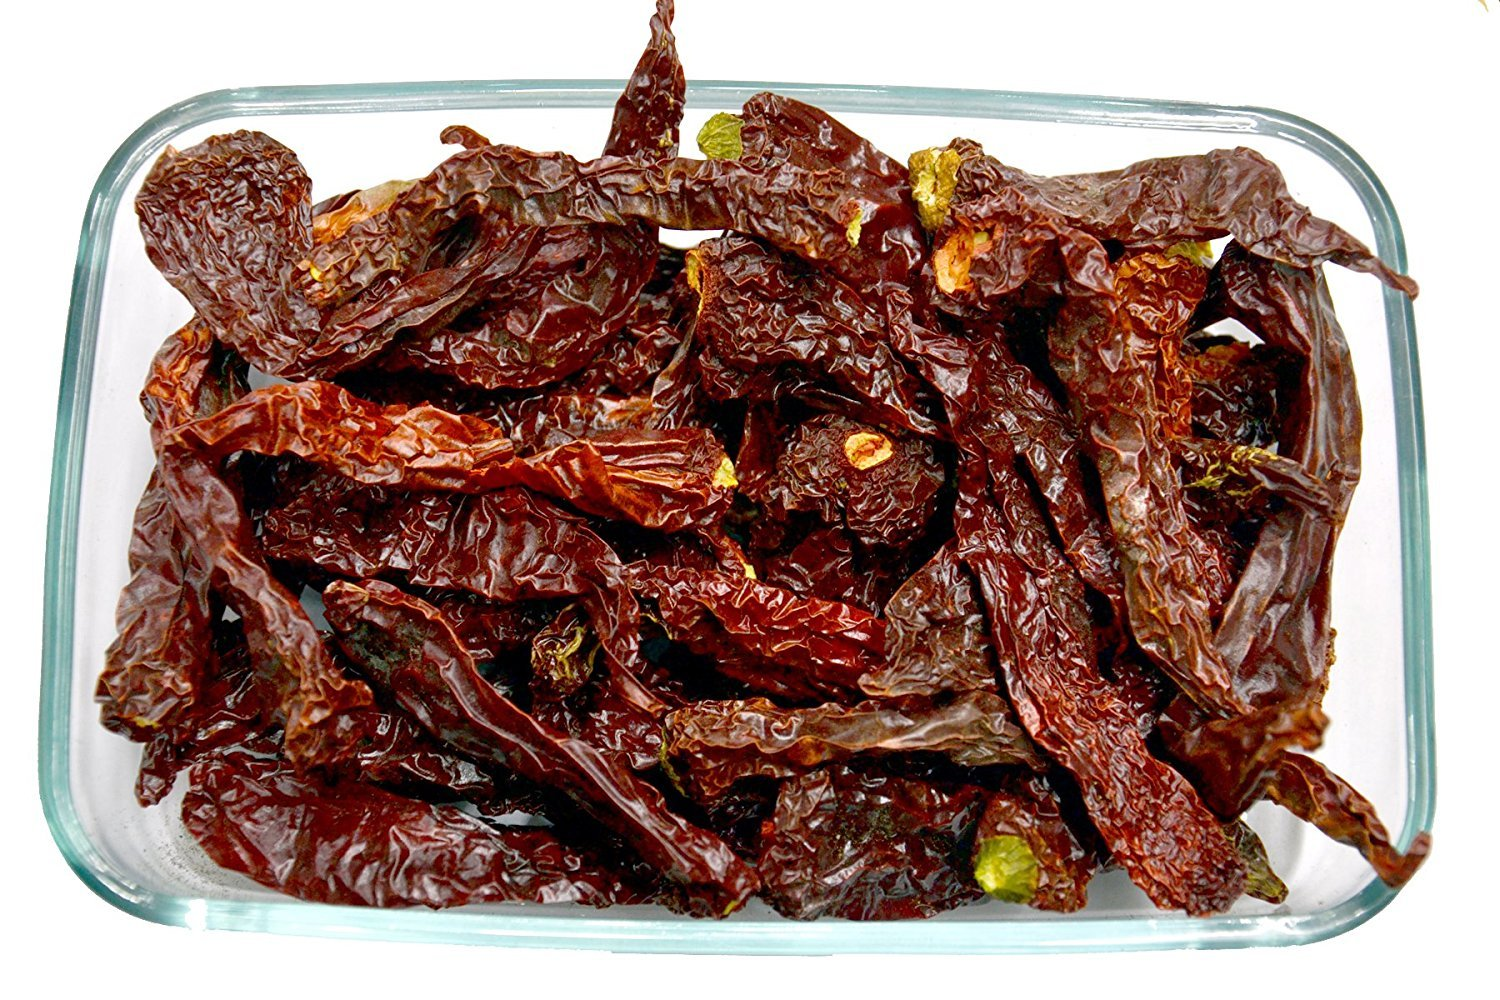 Whole Sun Dried KASHMIRI MIRCH Red Chillies Chili Peppers Spices 500g